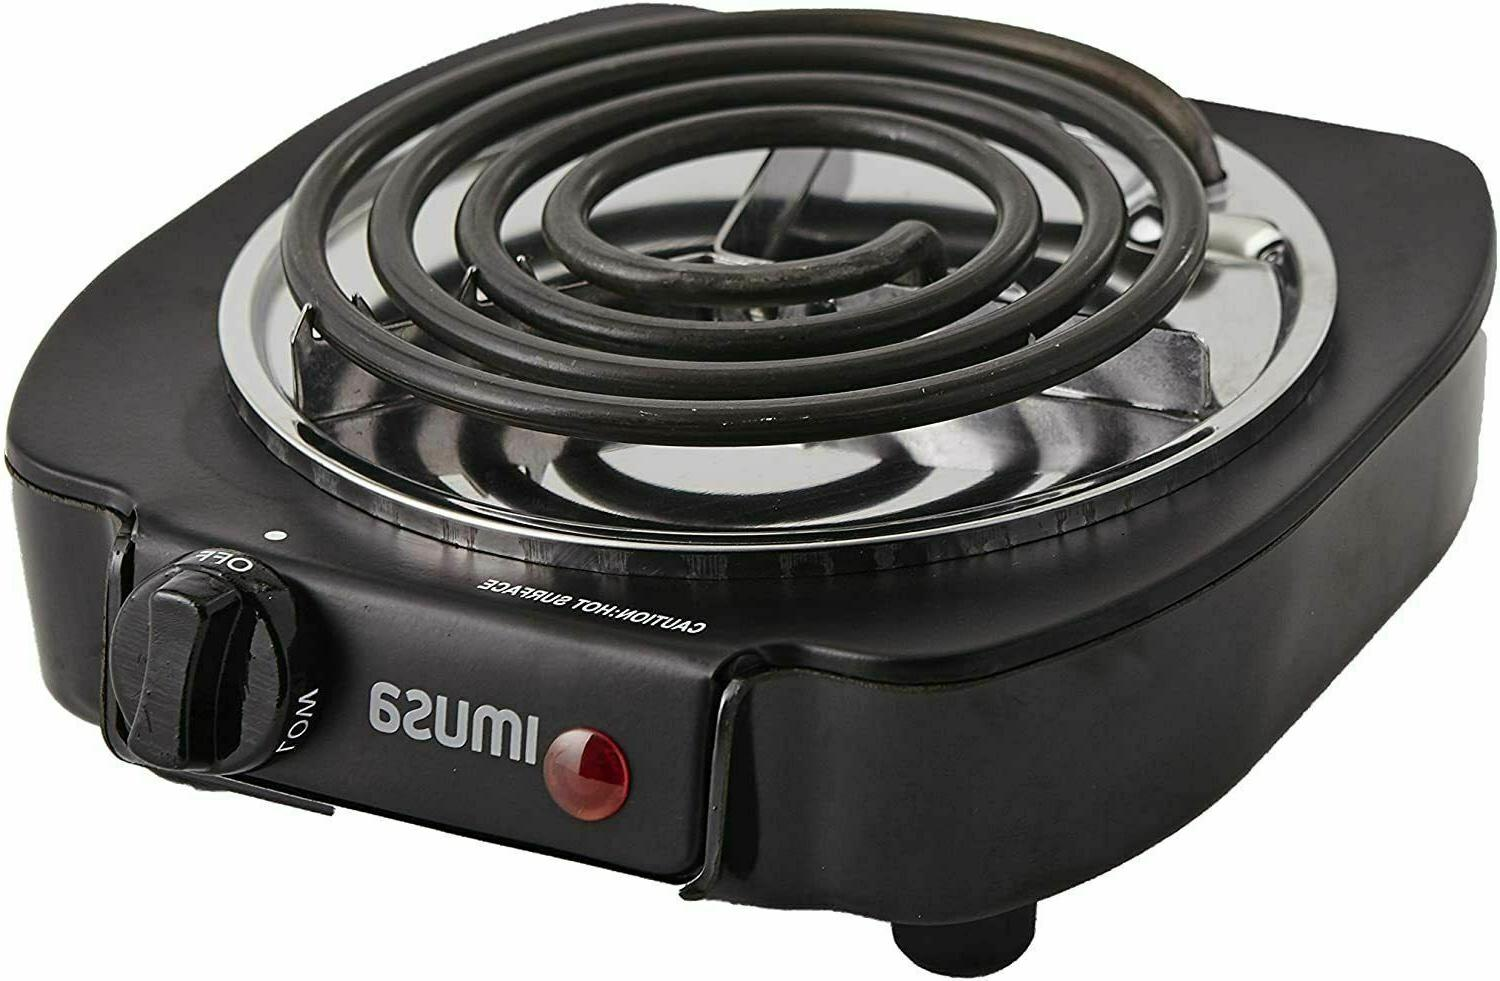 NEW Portable Single Burner Hot Plate Counter Stove Cooking